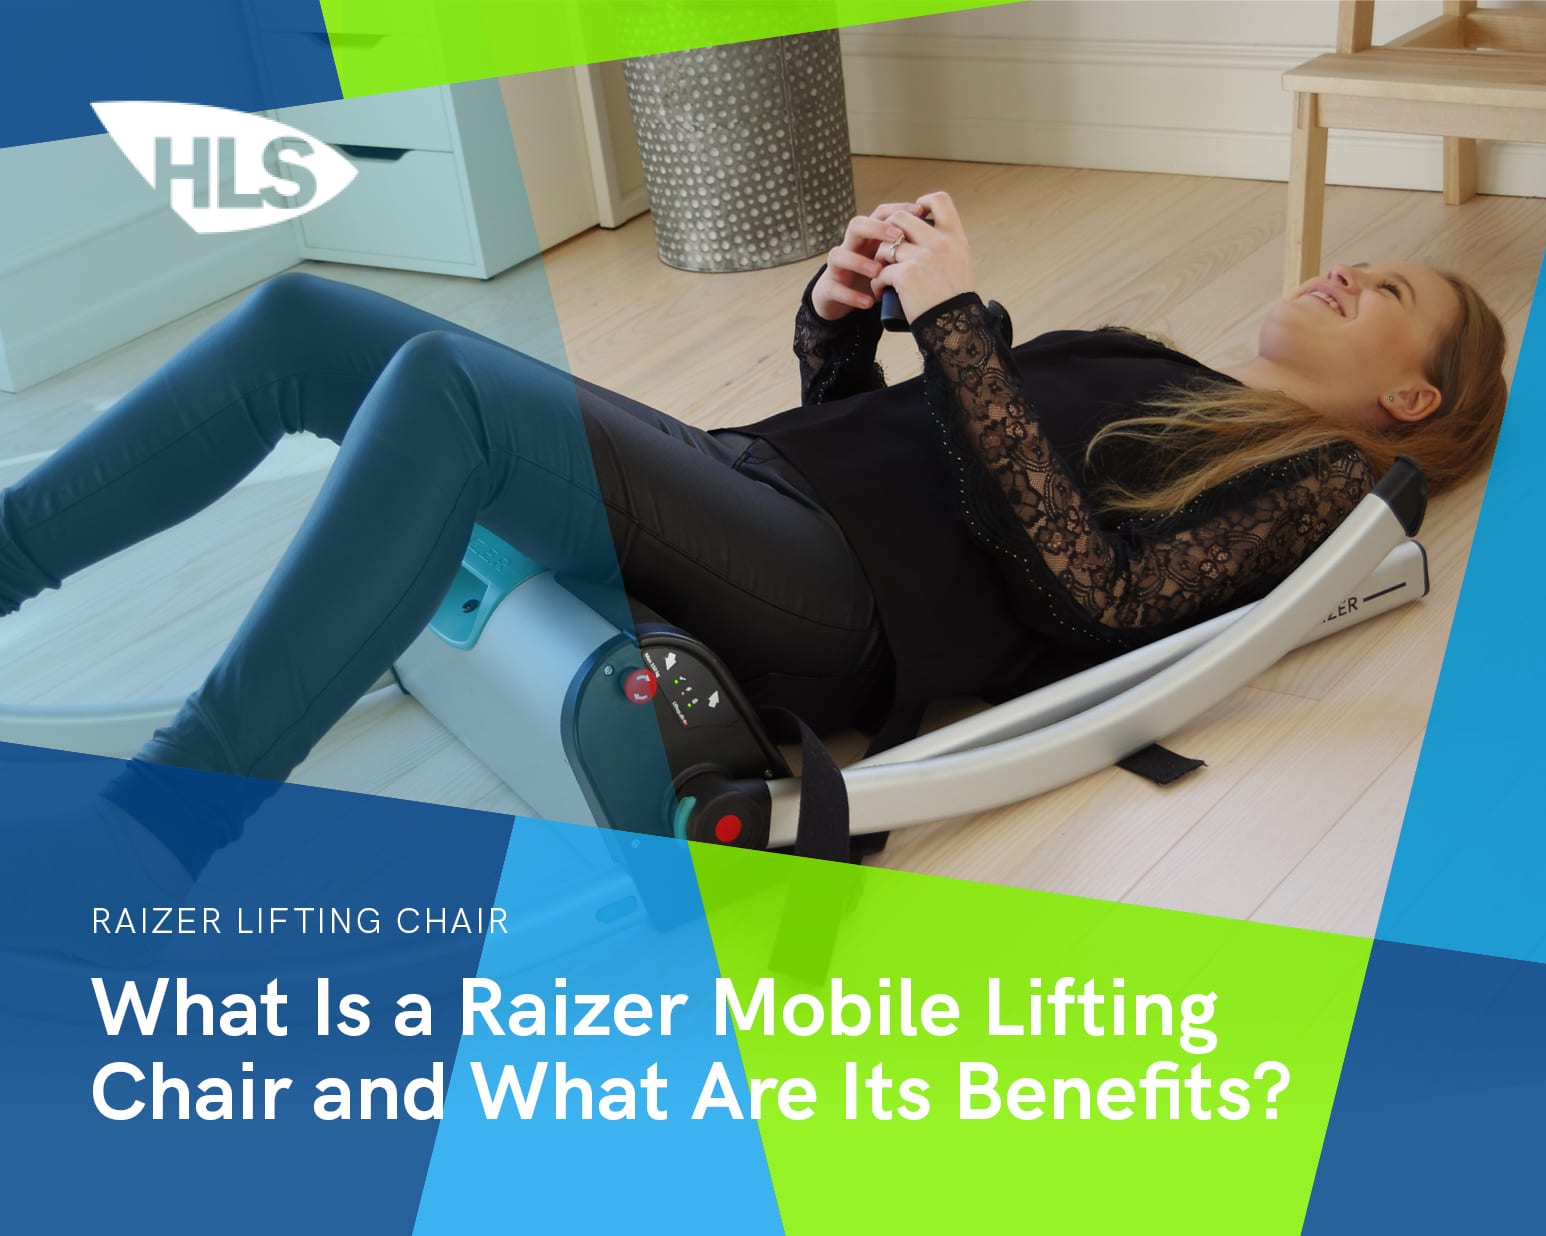 What Is a Raizer Mobile Lifting Chair and What Are Its Benefits?